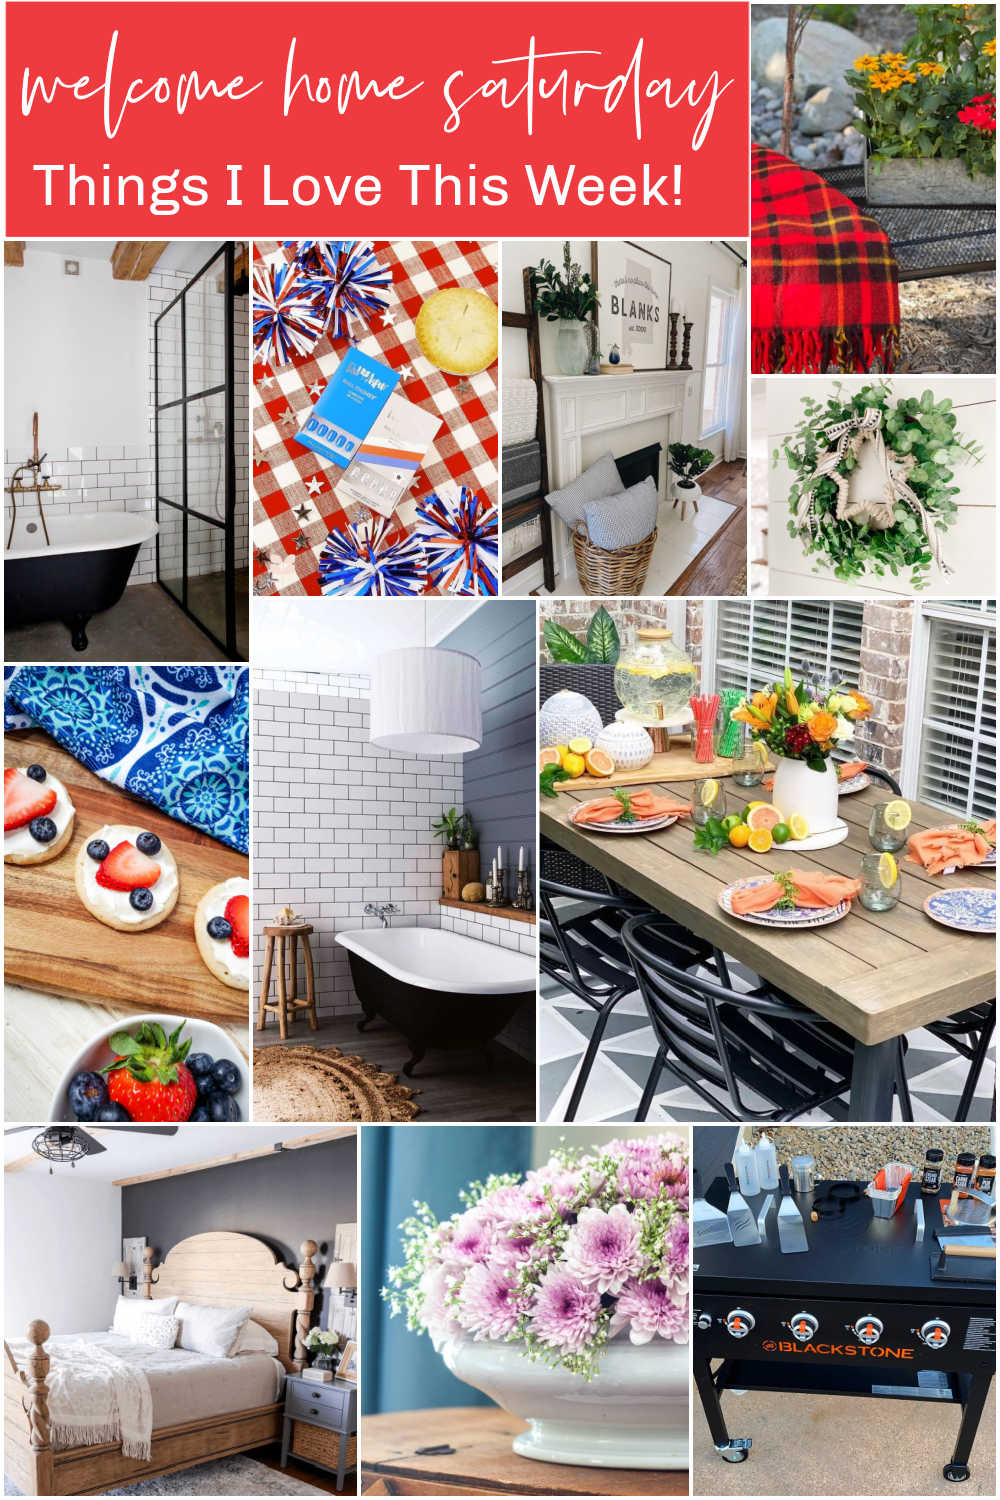 Welcome Home Saturday withSweet Pea. Each Saturday I share a few of my favorite things and some DIY ideas that I love this week!